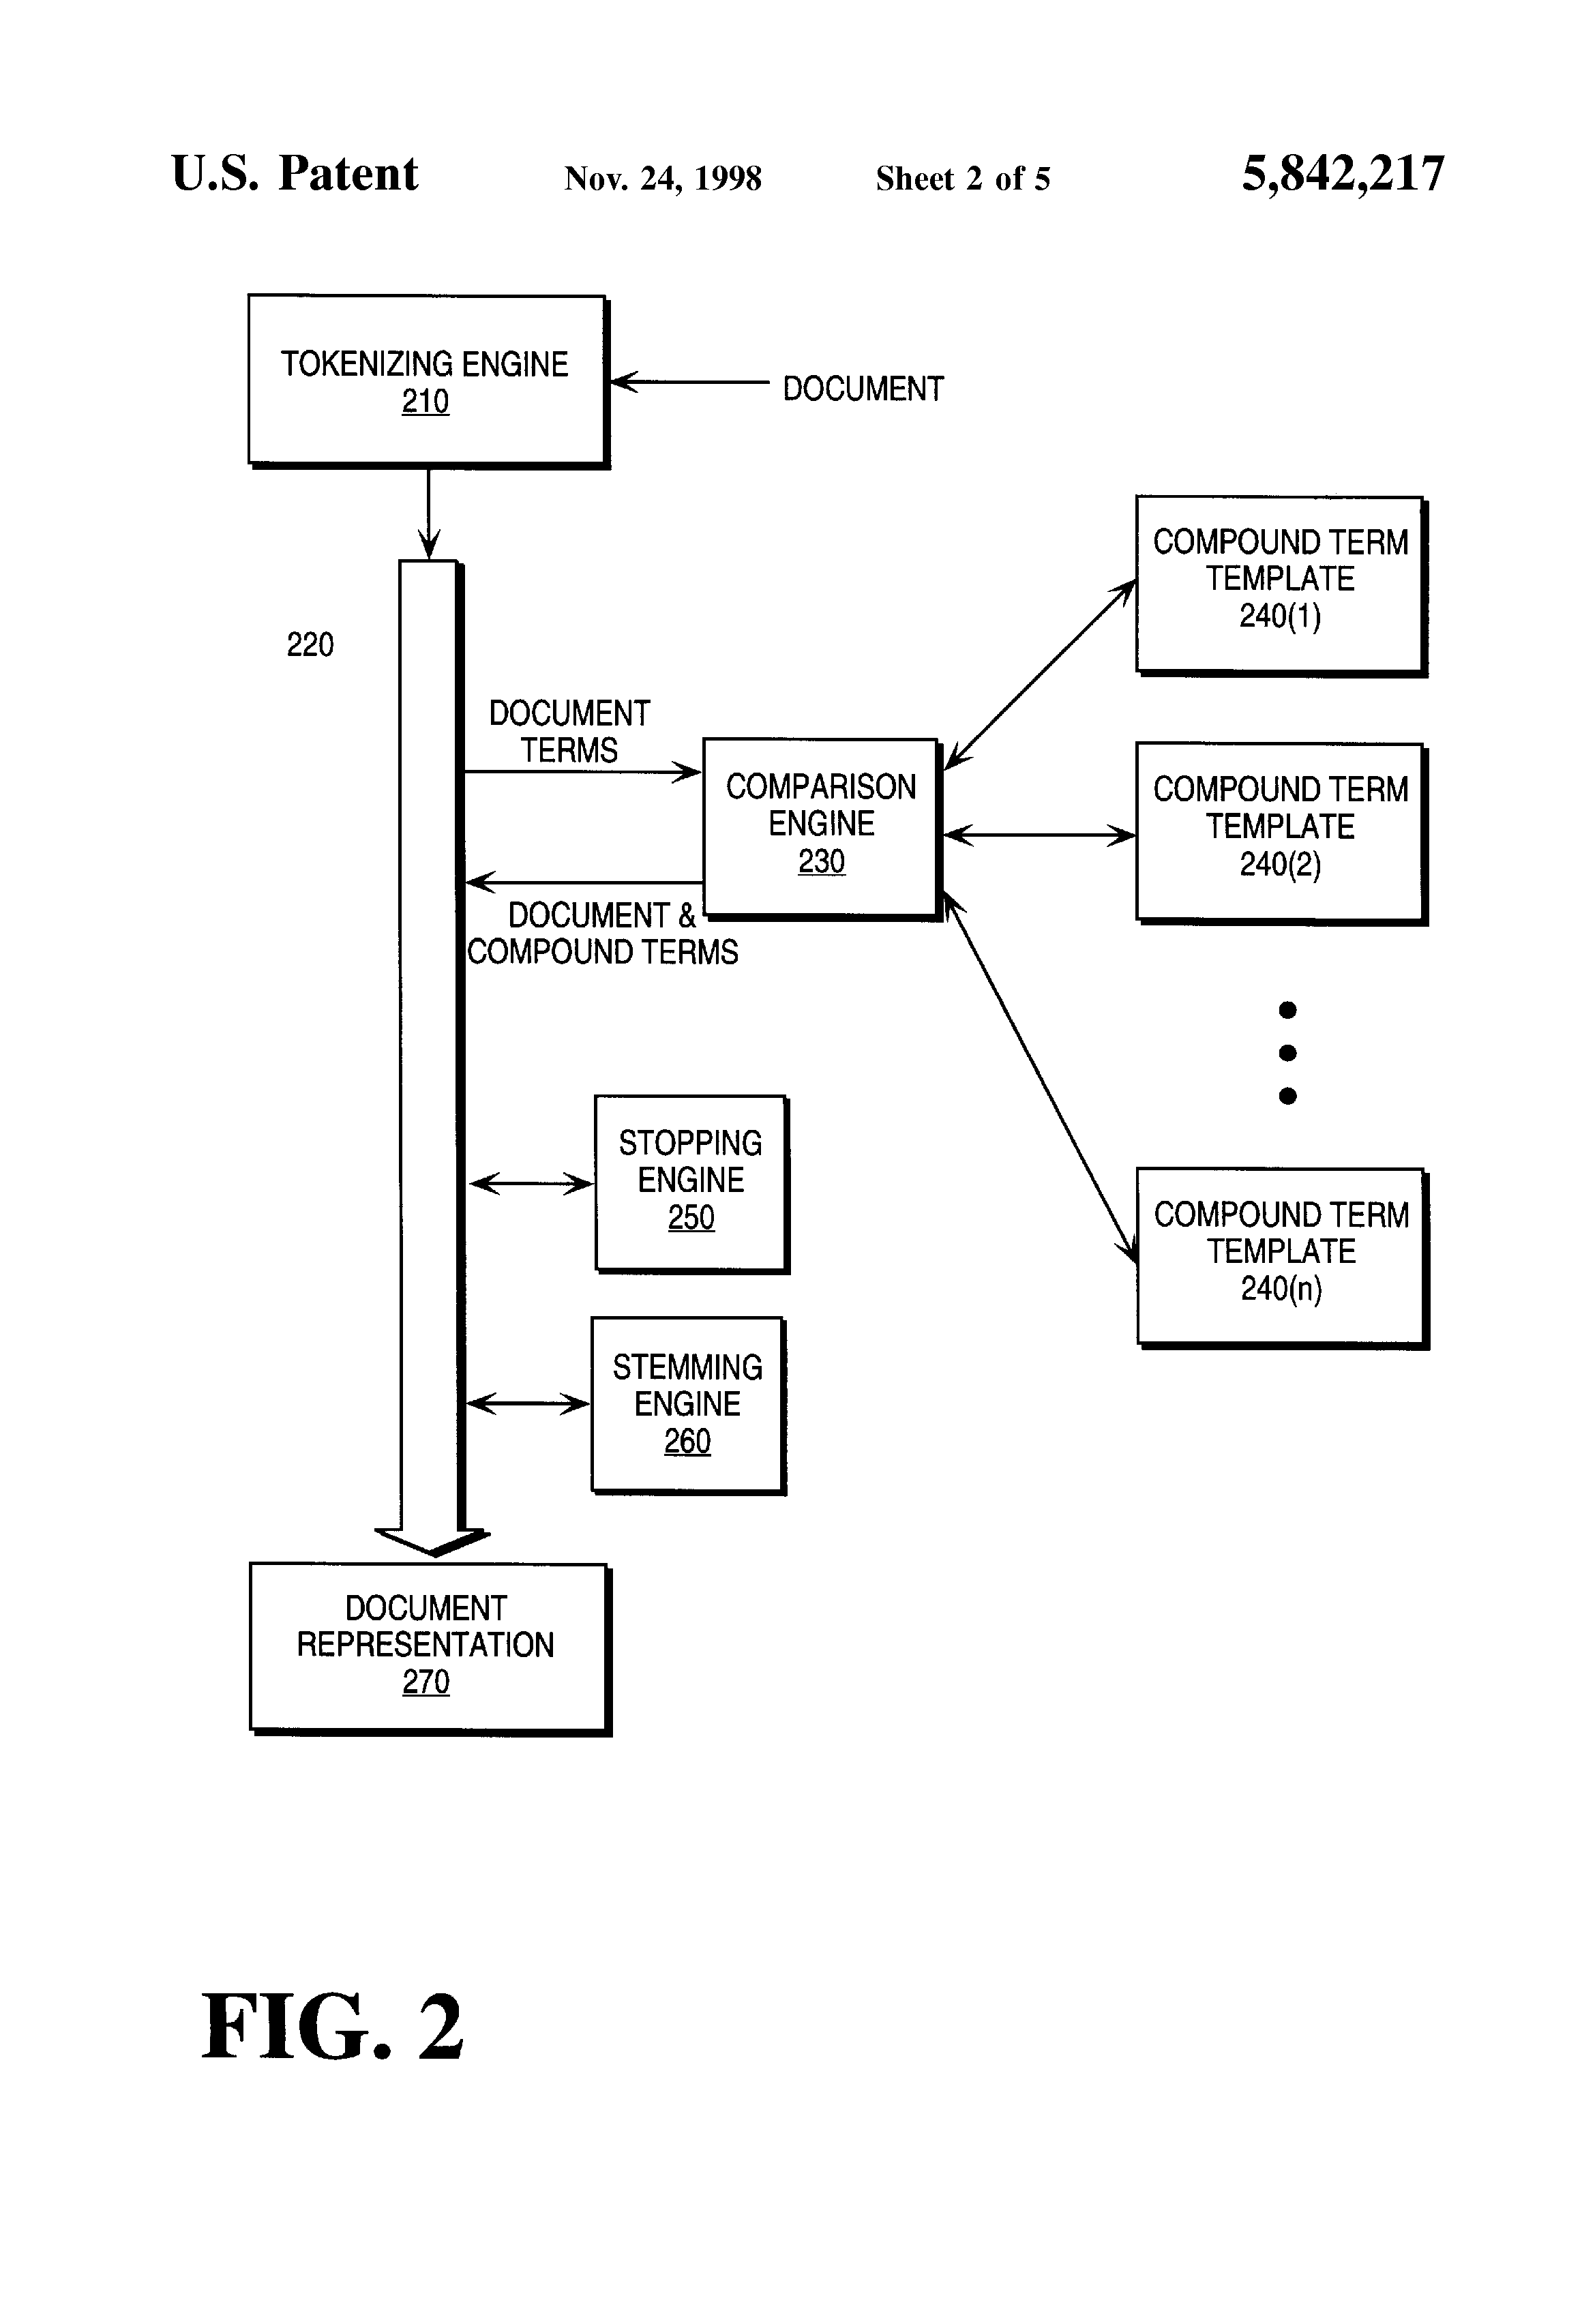 patent specification template - patent us5842217 method for recognizing compound terms